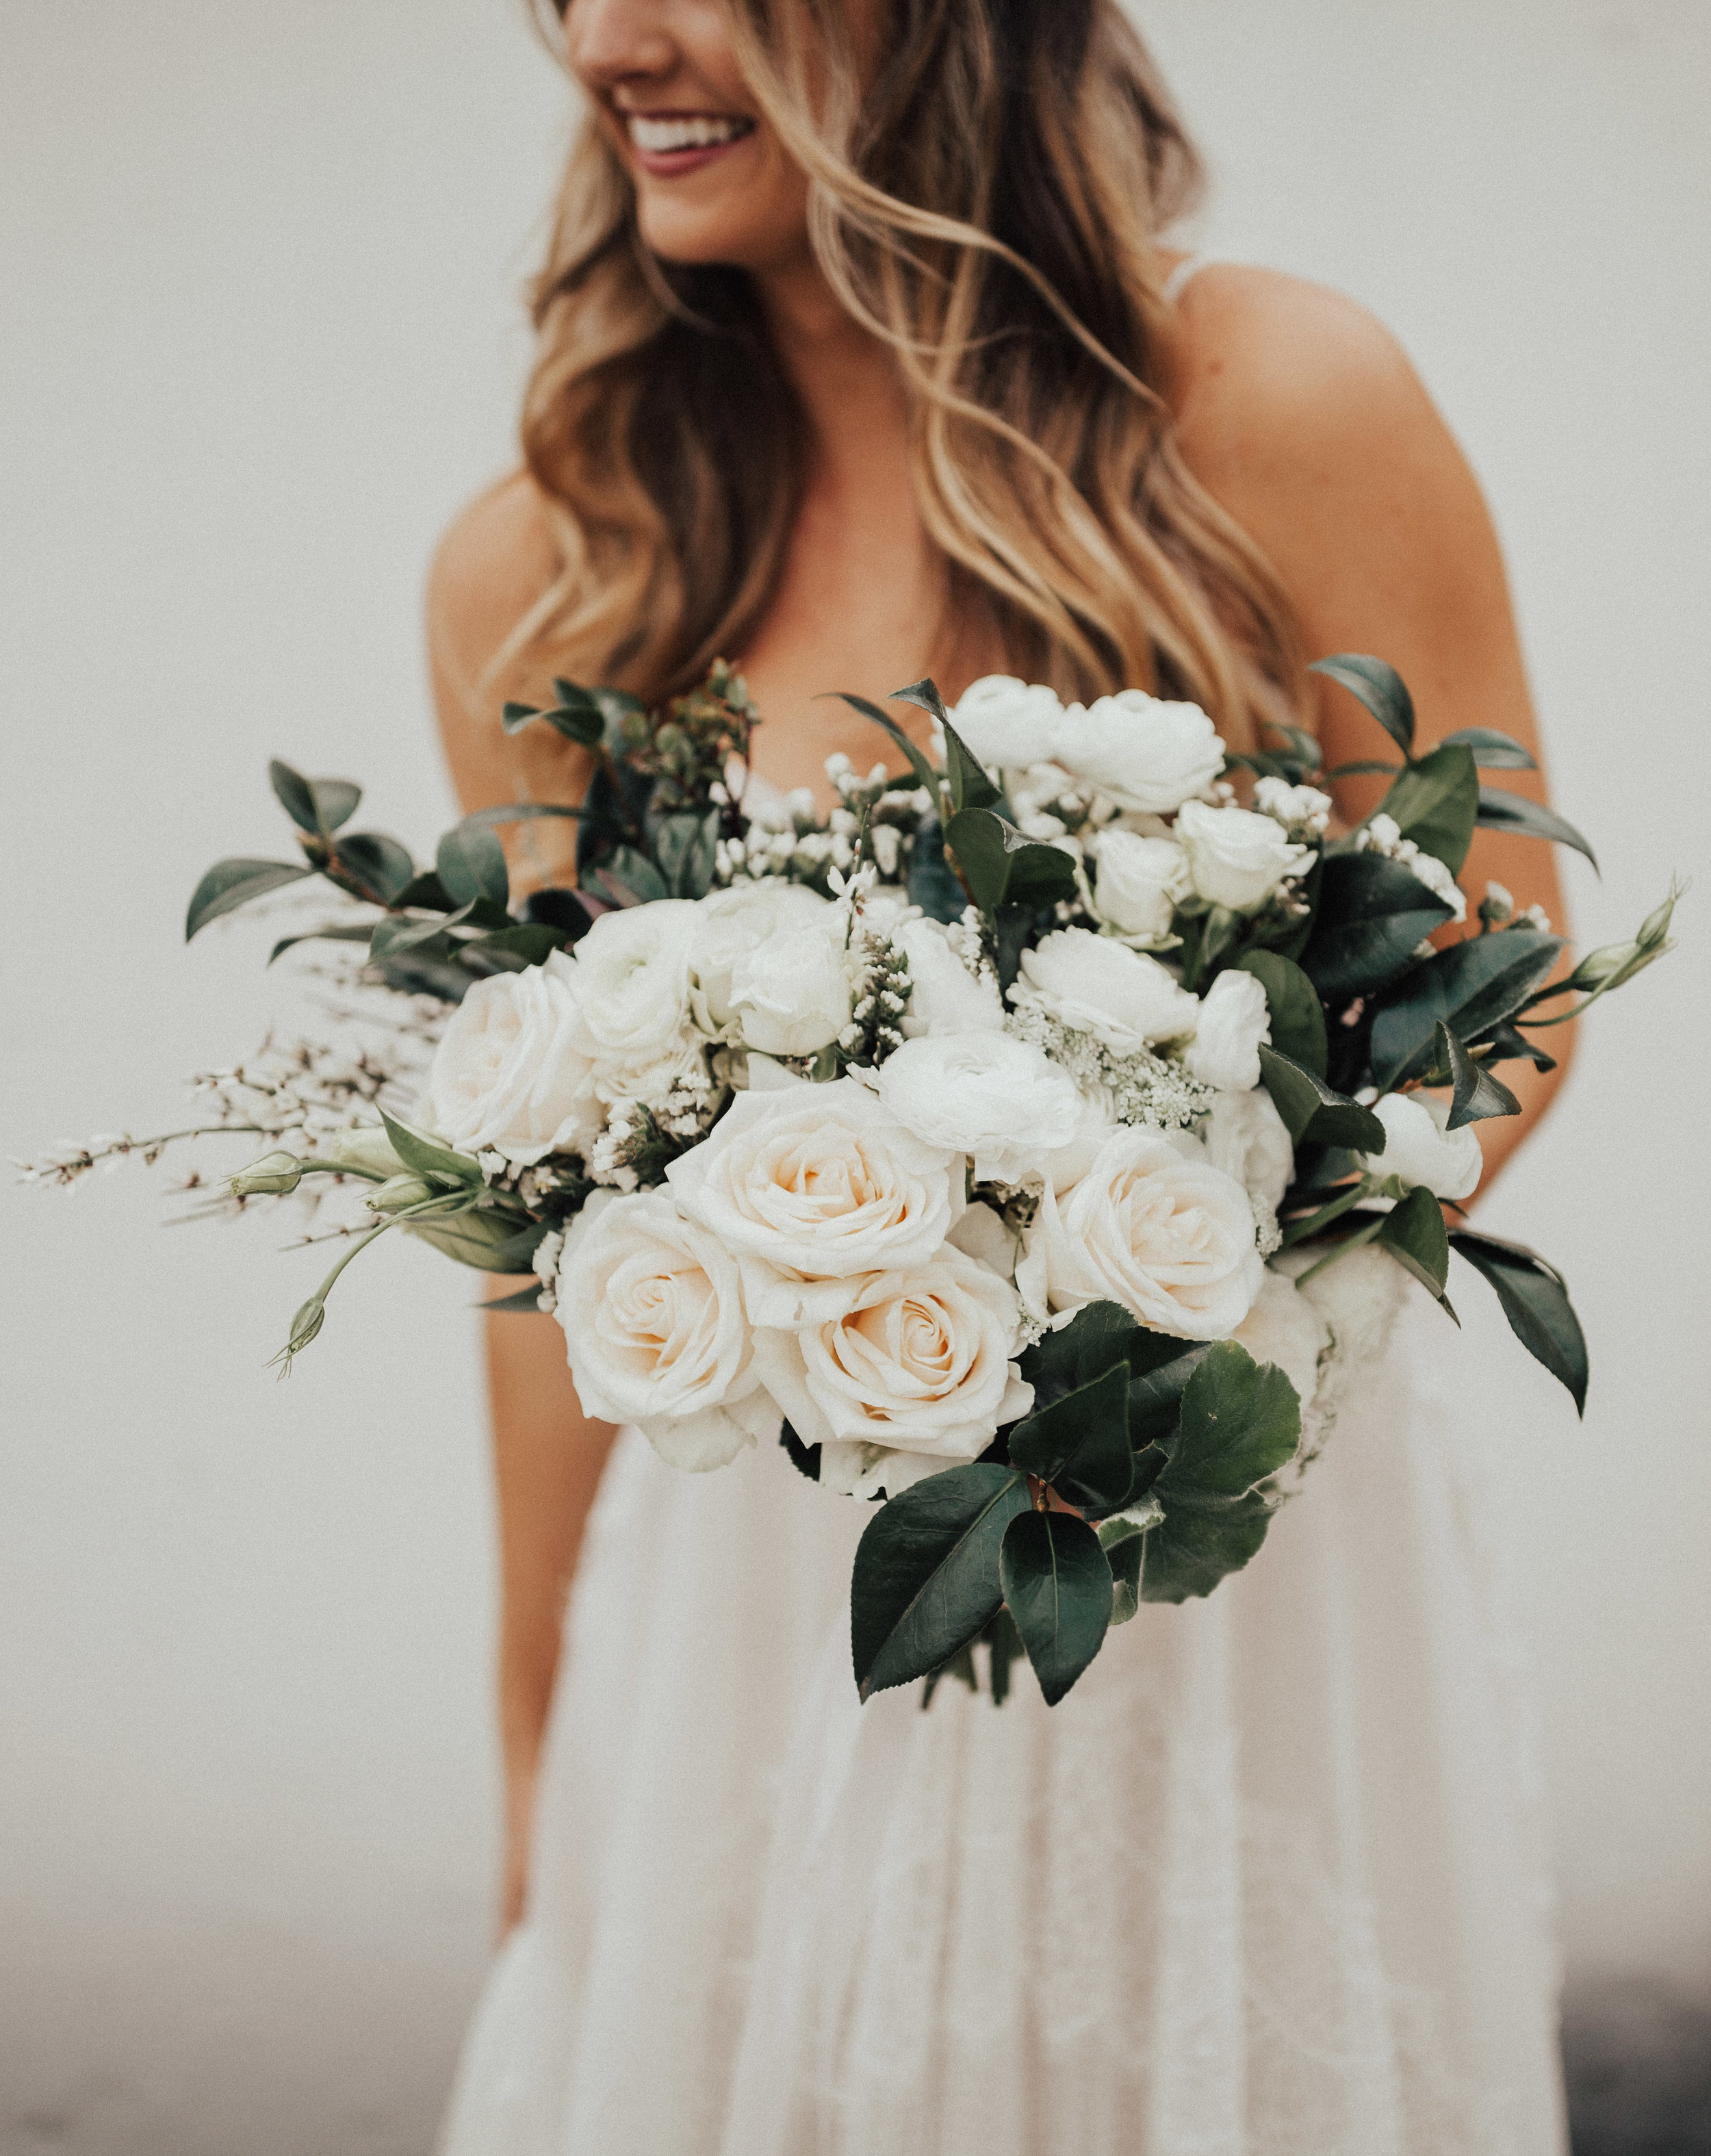 Medium Round Garden Bouquet  Style: textured Details: roses, raunuculus, greenery   {Photo courtesy of    Christy Johnson   }